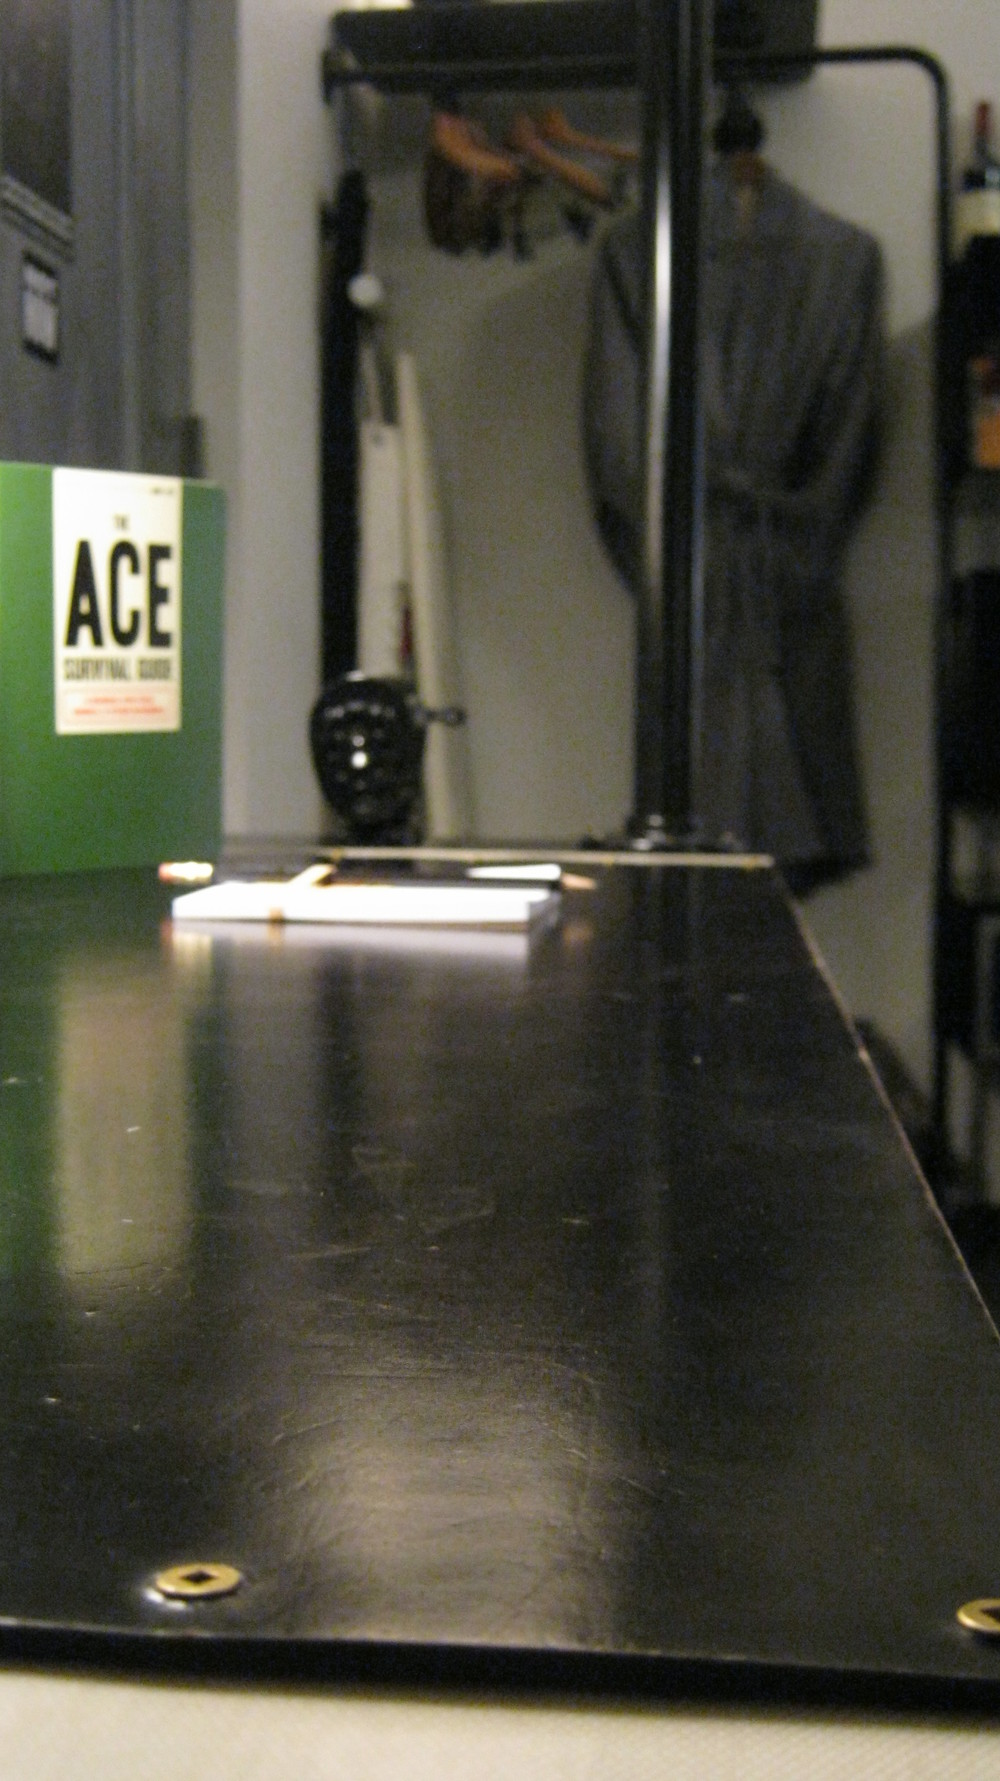 Hotel Ace - NYC - Custom Distressed Leather - EcoDomo.JPG